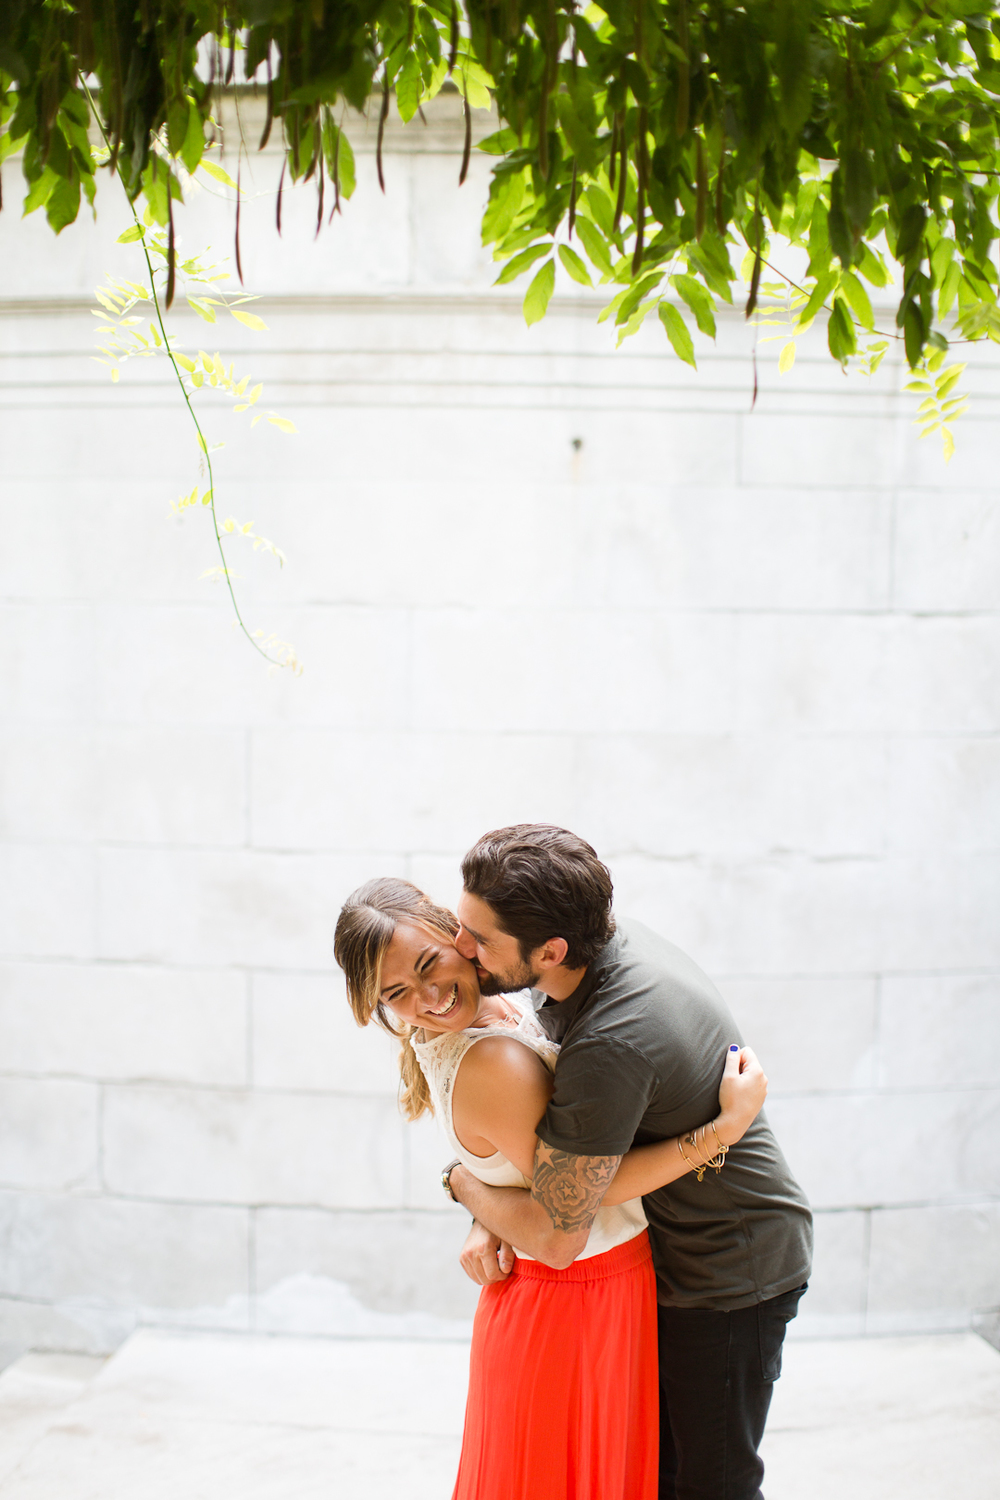 Melissa Kruse Photography - Eileen & Kenny Engagement Photos-108.jpg